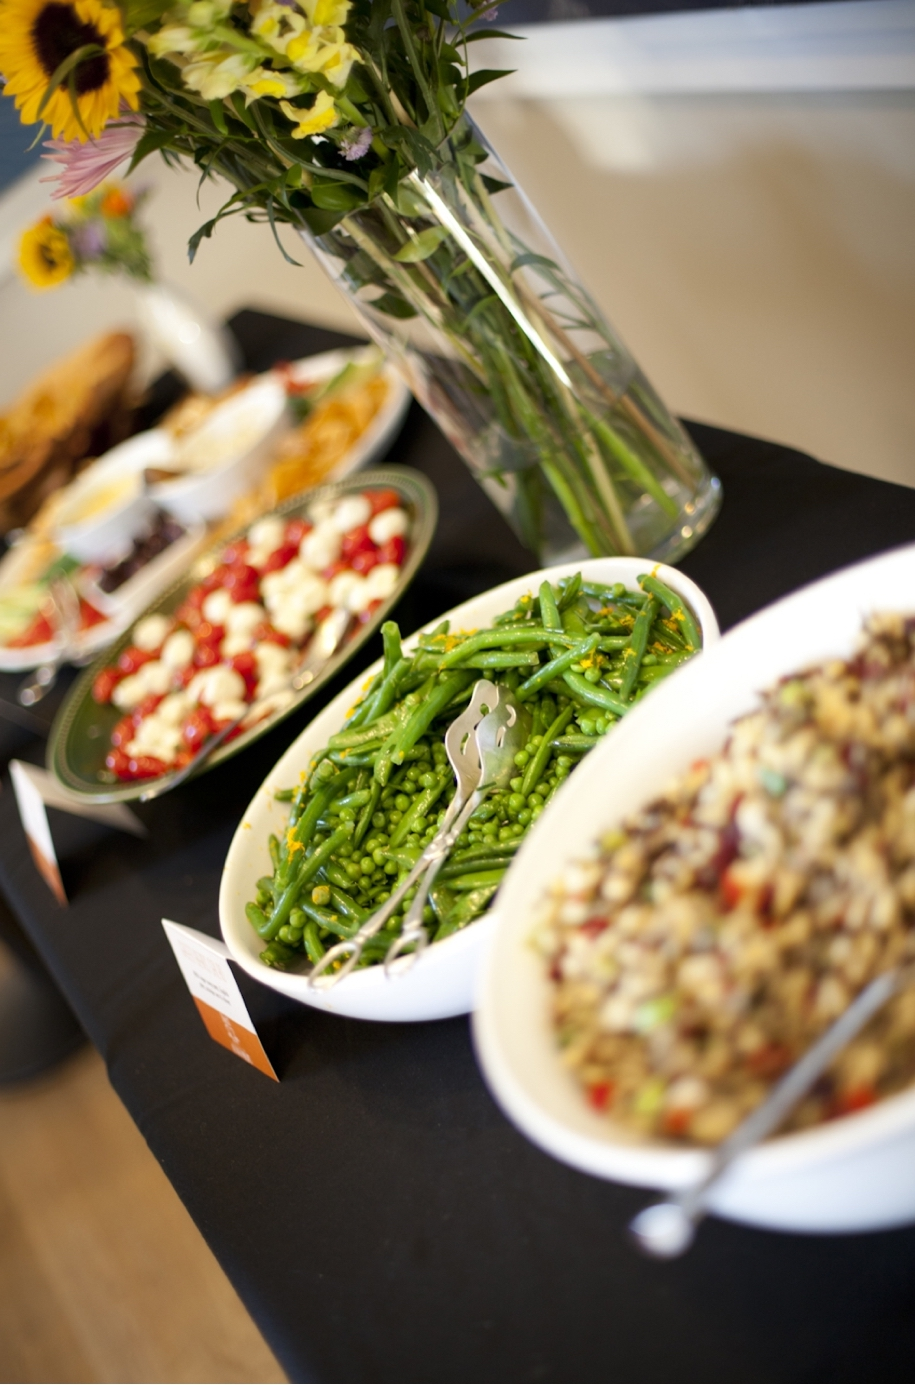 Food displayed on a table for an event